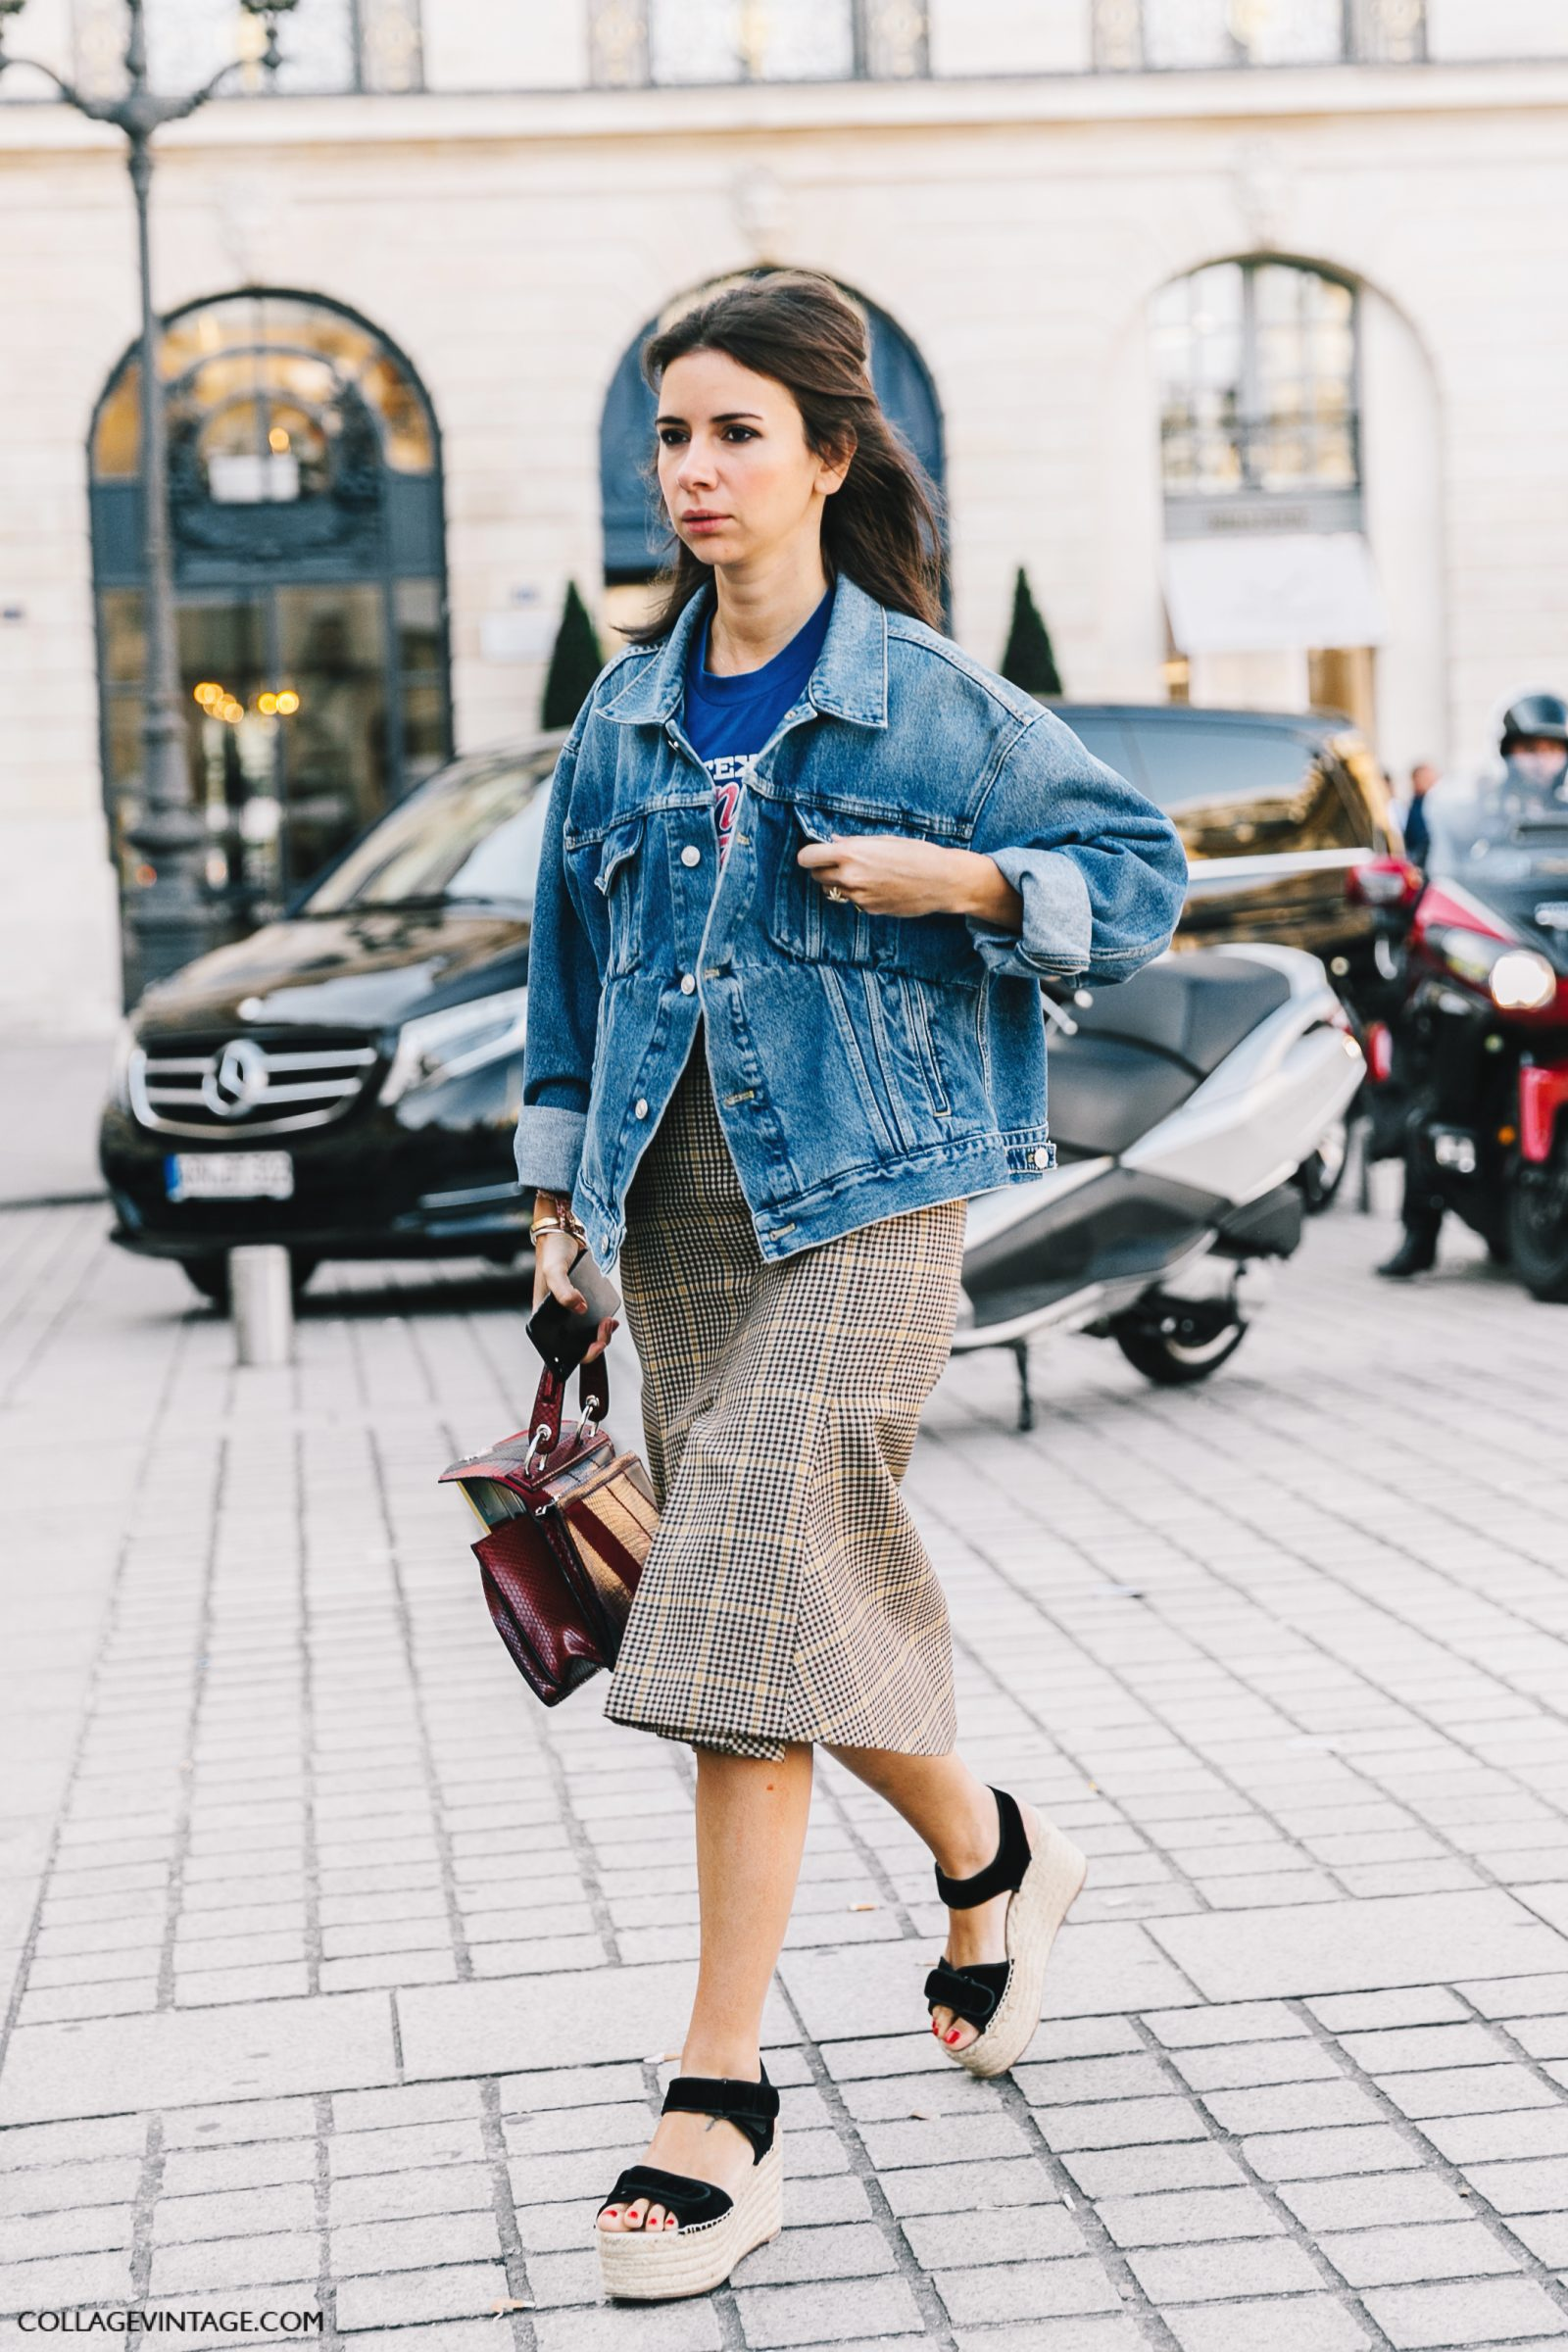 pfw-paris_fashion_week_ss17-street_style-outfit-collage_vintage-louis_vuitton-miu_miu-10